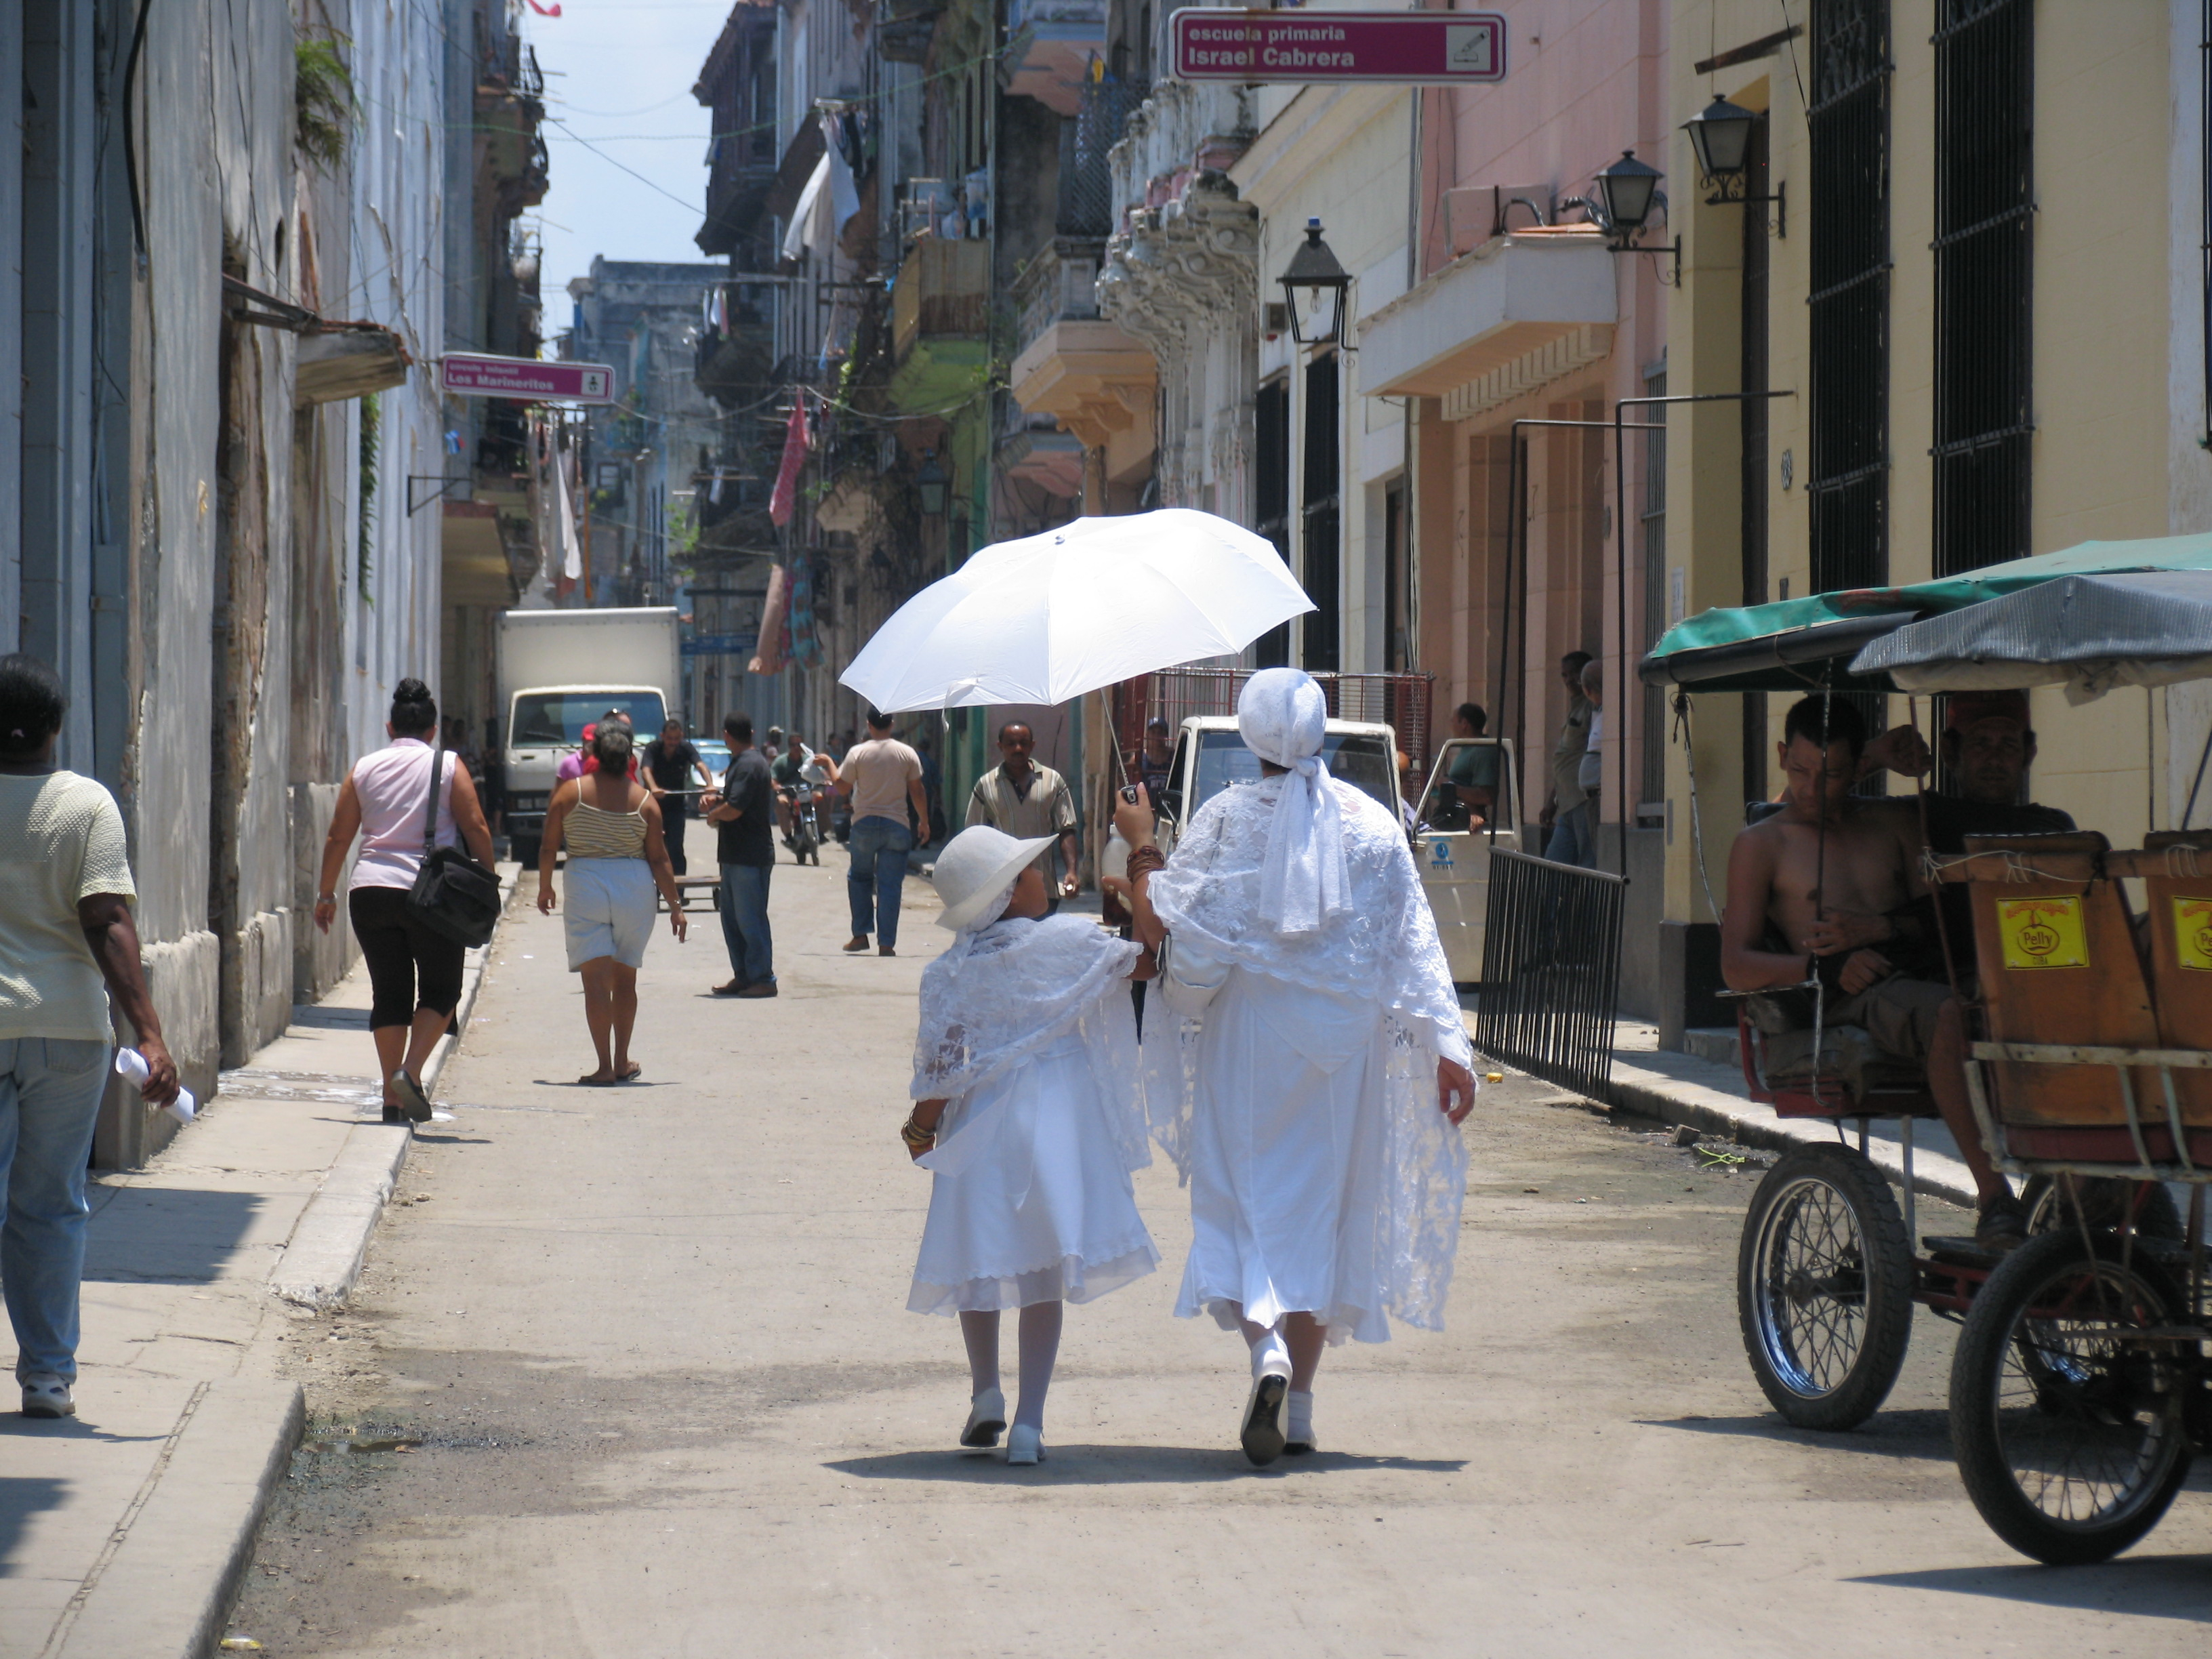 Photo © Lillian Guerra. A grandmother and granddaughter dressed as yabós, as part of their baptismal and ritual entry into the Santería faith, Old Havana, Cuba, 2011. After decades of repression of Santería, the main Afro-Cuban religion, the Cuban government's lifting of sanctions against its practice has revitalized it enormously. Multiple generations are now rediscovering their black identities through the religion their ancestors used to help them survive slavery.